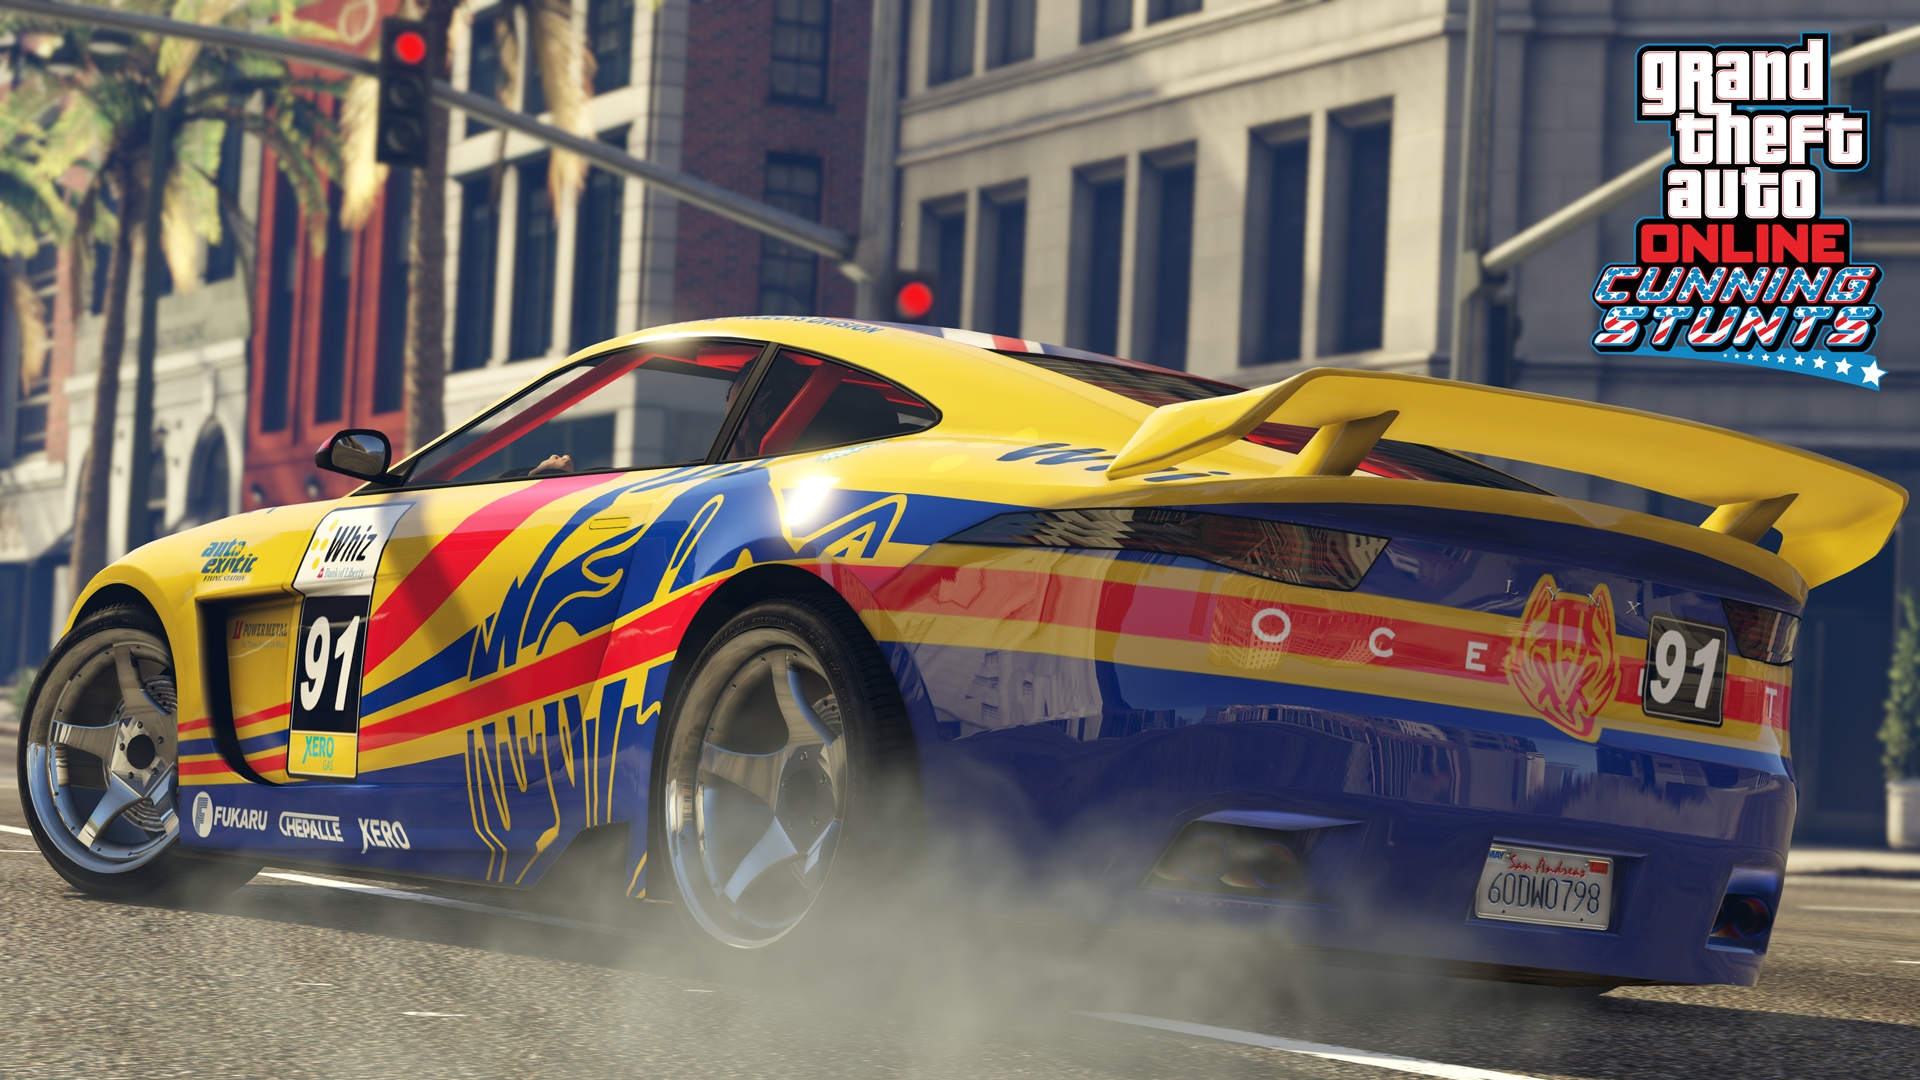 New Stunt Races And Vehicles Added To Gta Online Cunning Stunts